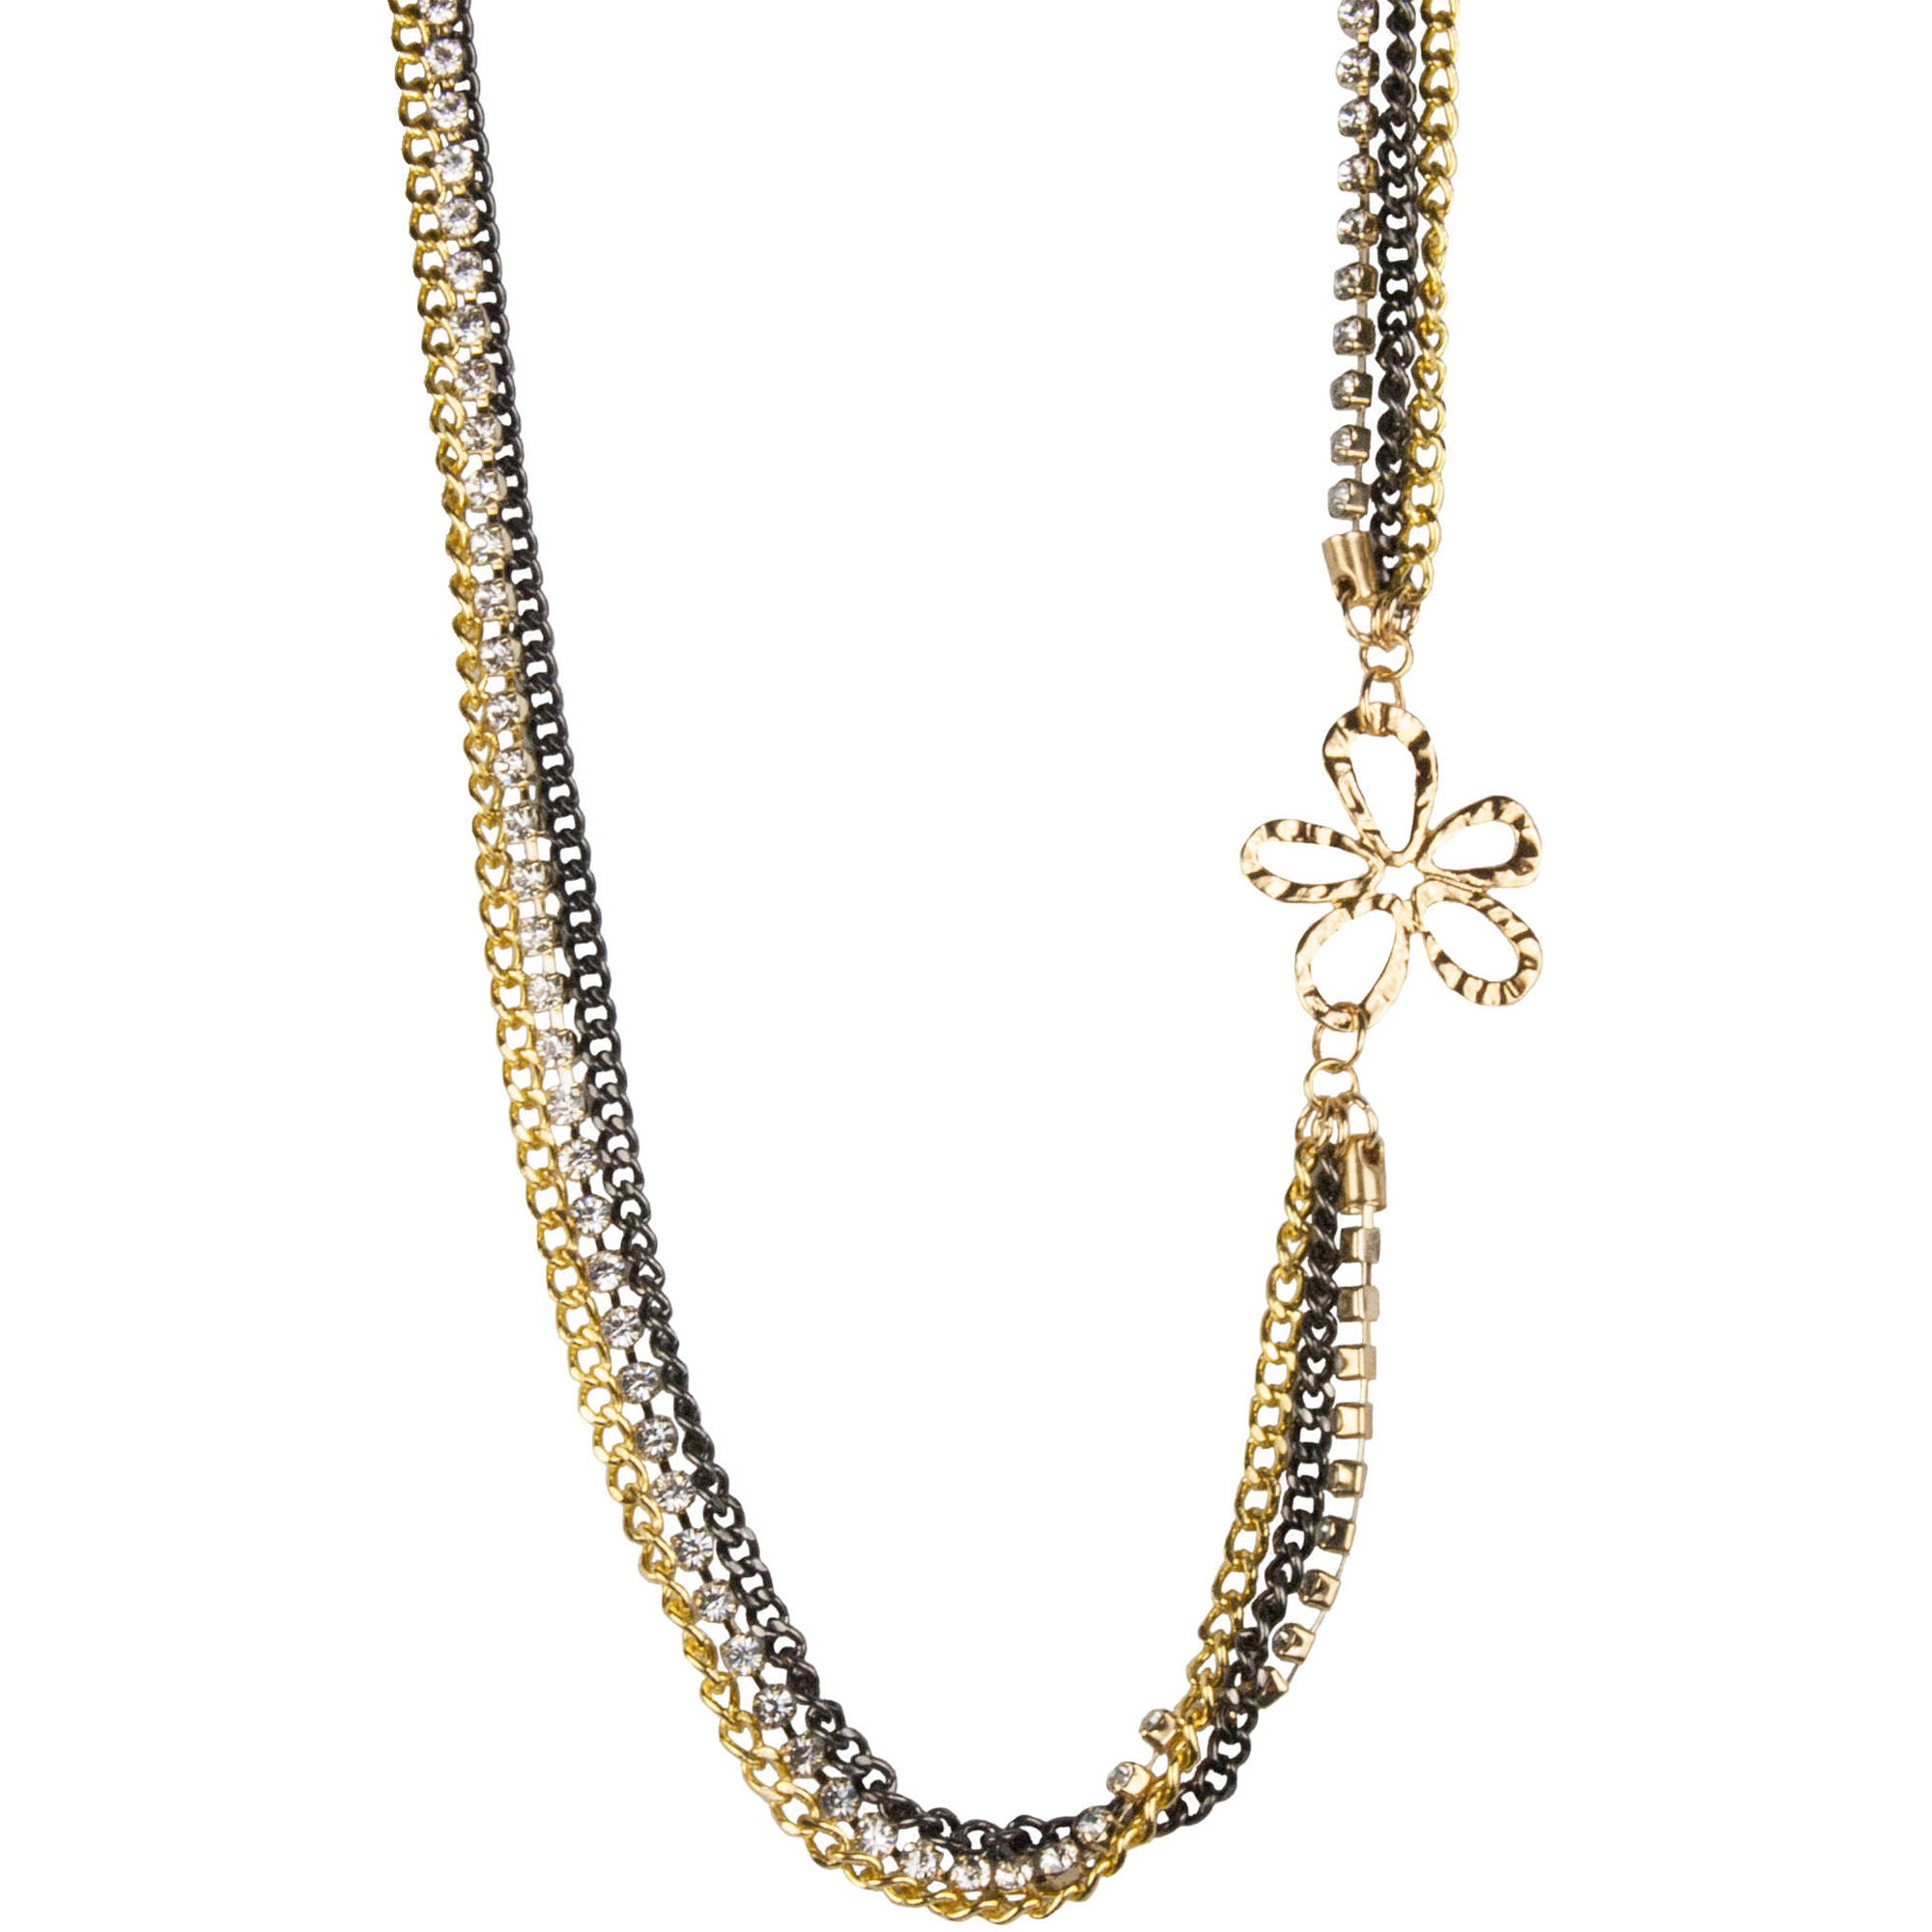 Miss Zoe by Calinana Multi Chain Necklace